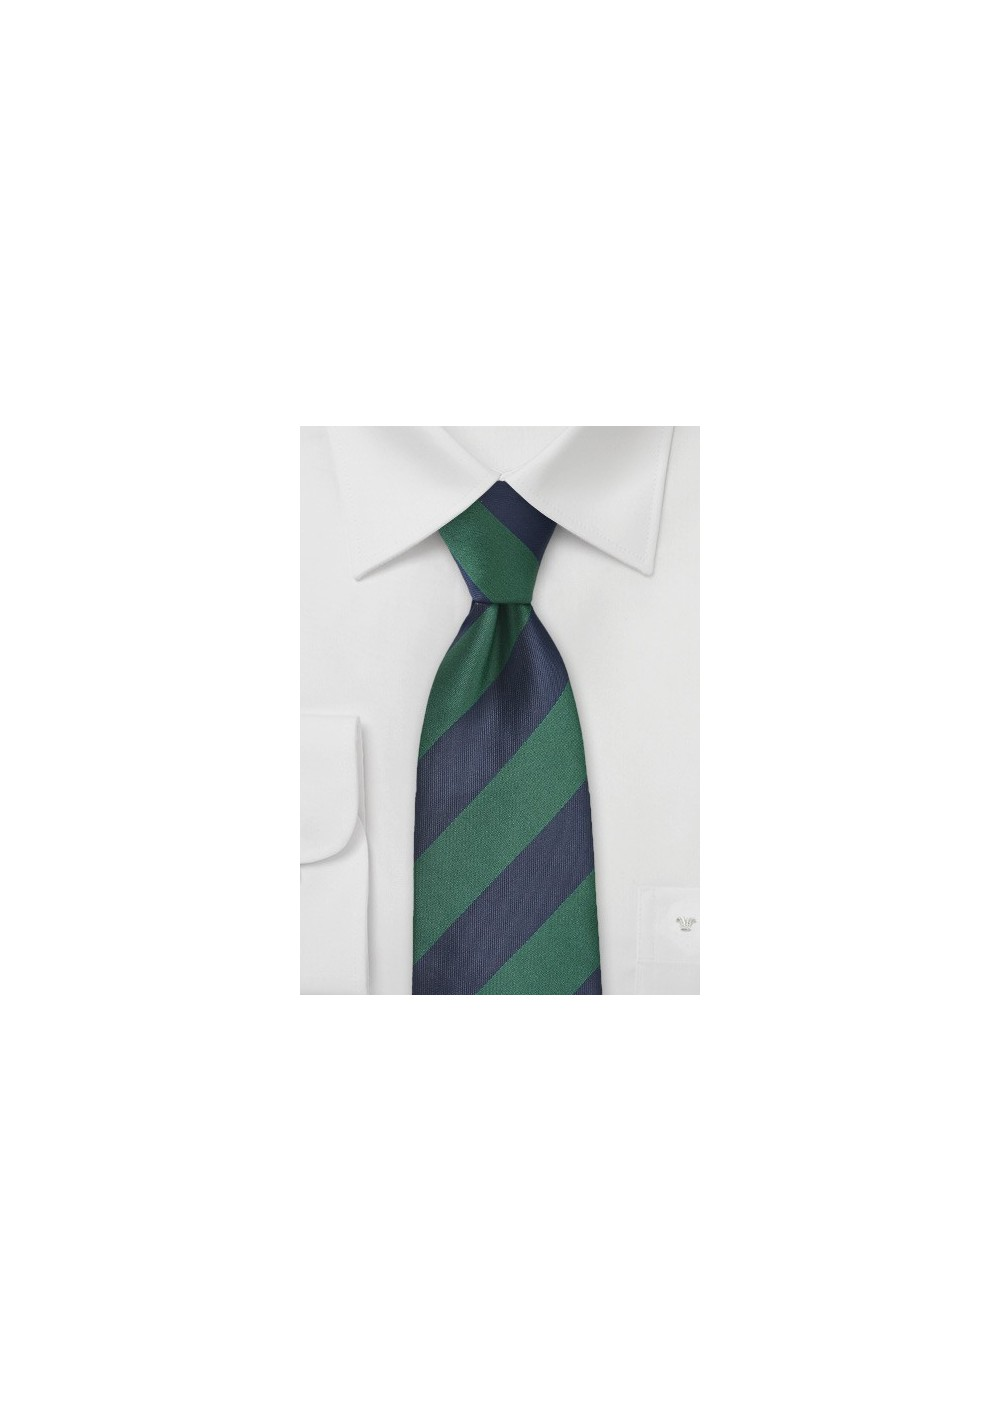 Wide Striped Tie in Hunter Green and Midnight Blue